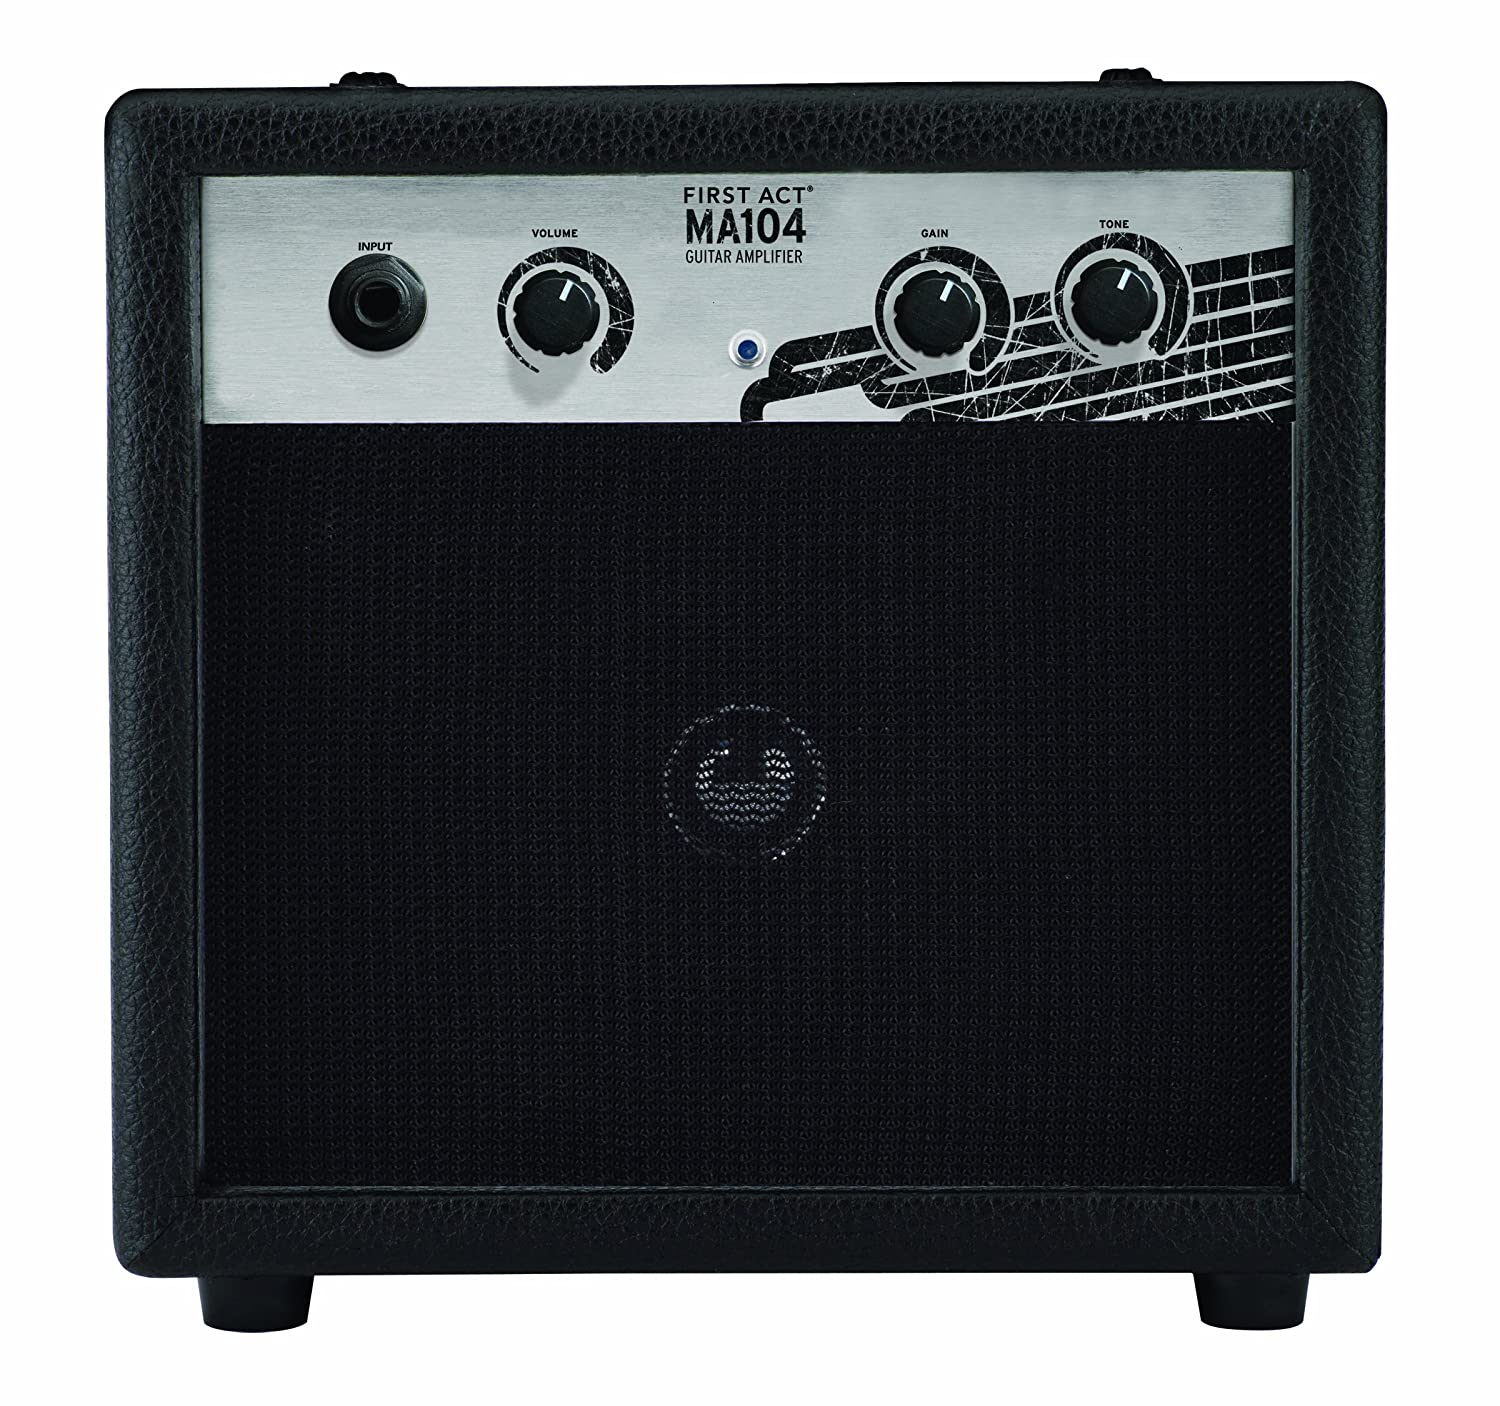 91vt4VLe 9L._SL1500_ amazon com first act practice size guitar amplifier ma104 first  at alyssarenee.co